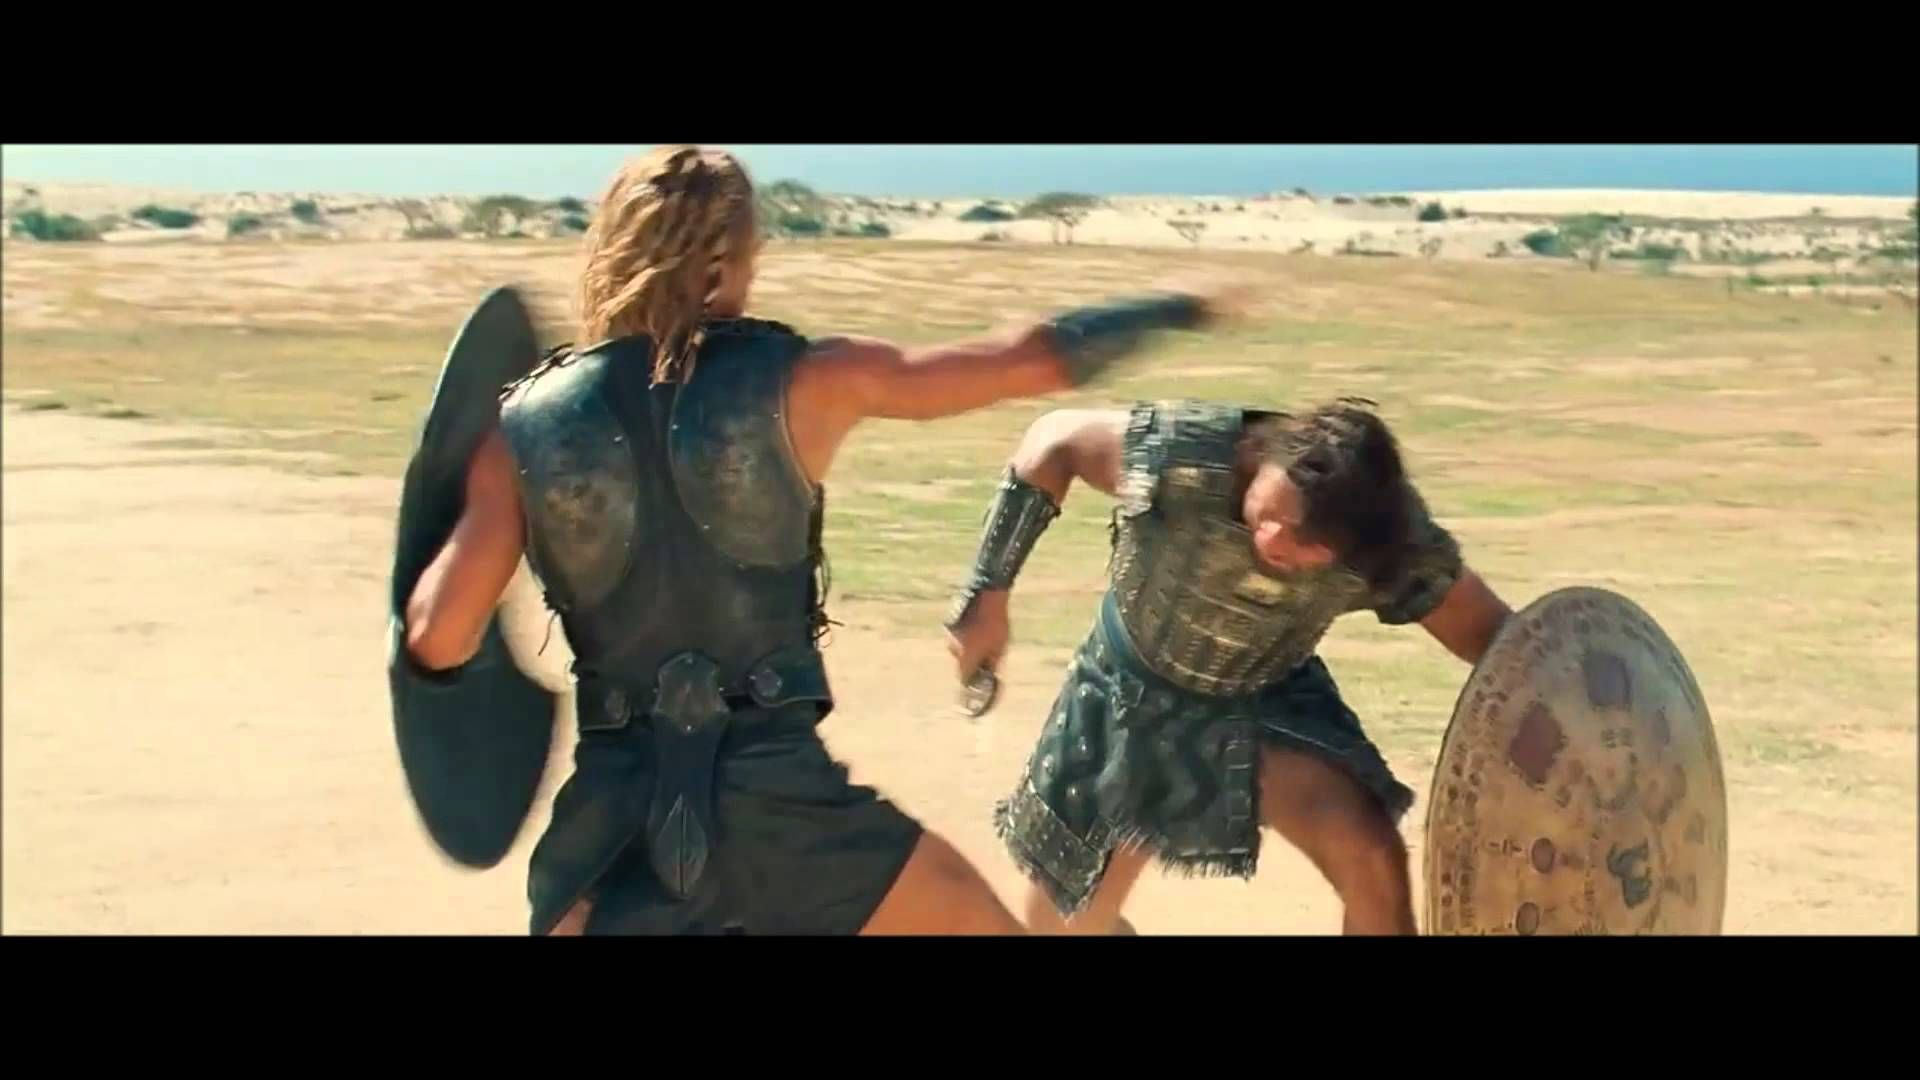 Hector vs Achilles from the movie Troy 2004  | Cine, videos